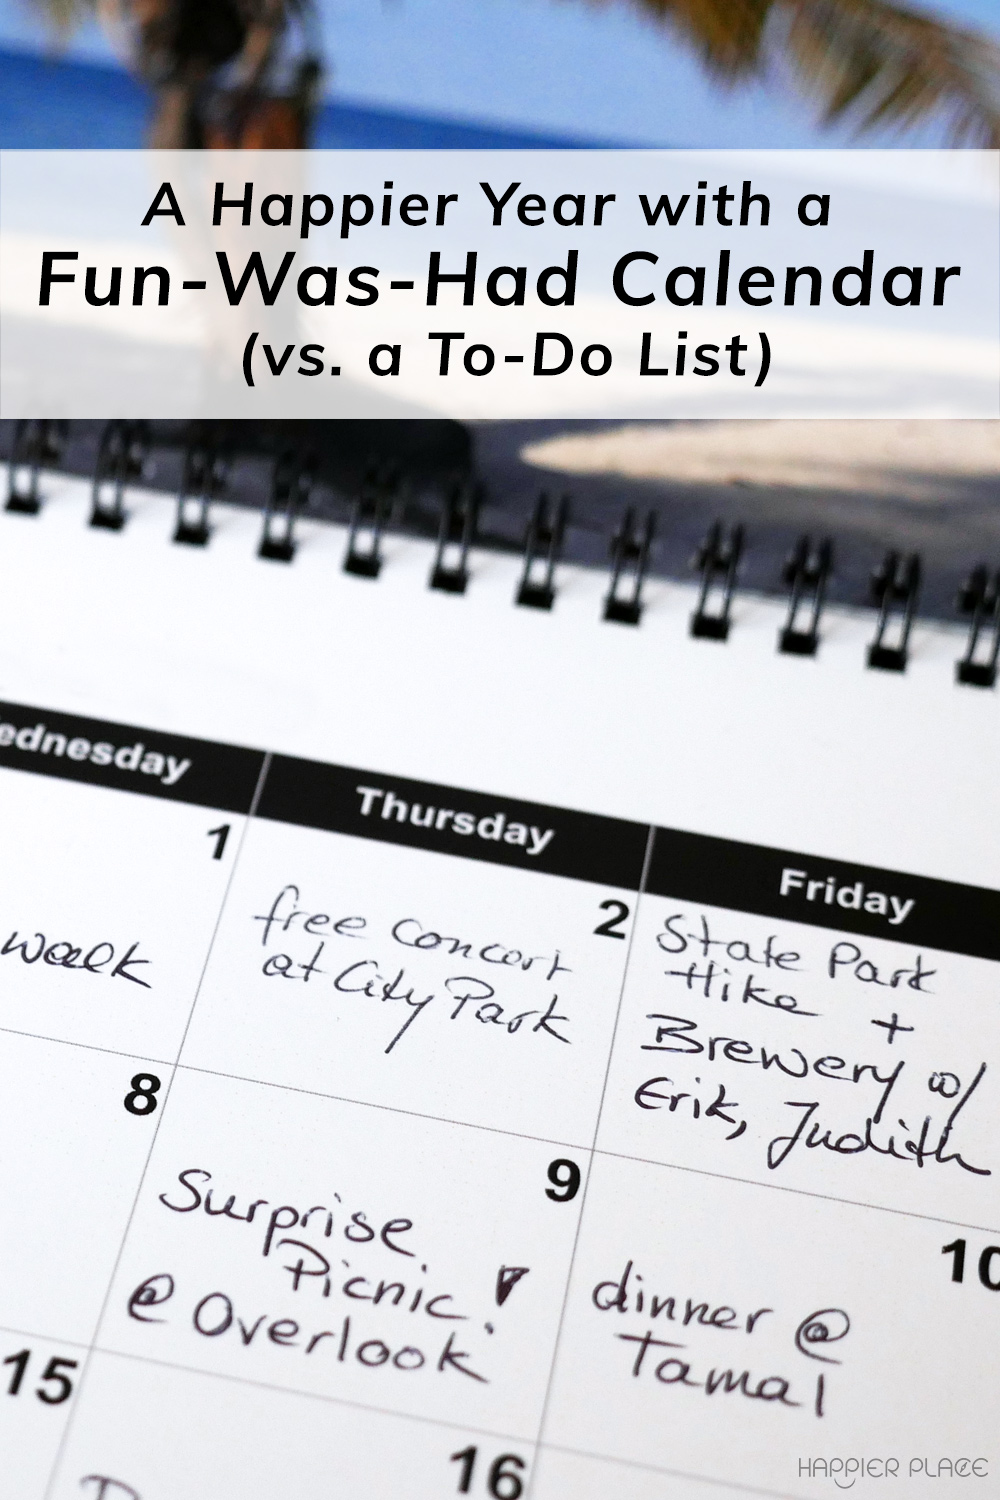 A Happier Year with a Fun-Was-Had Calendar (vs. a To-Do List)